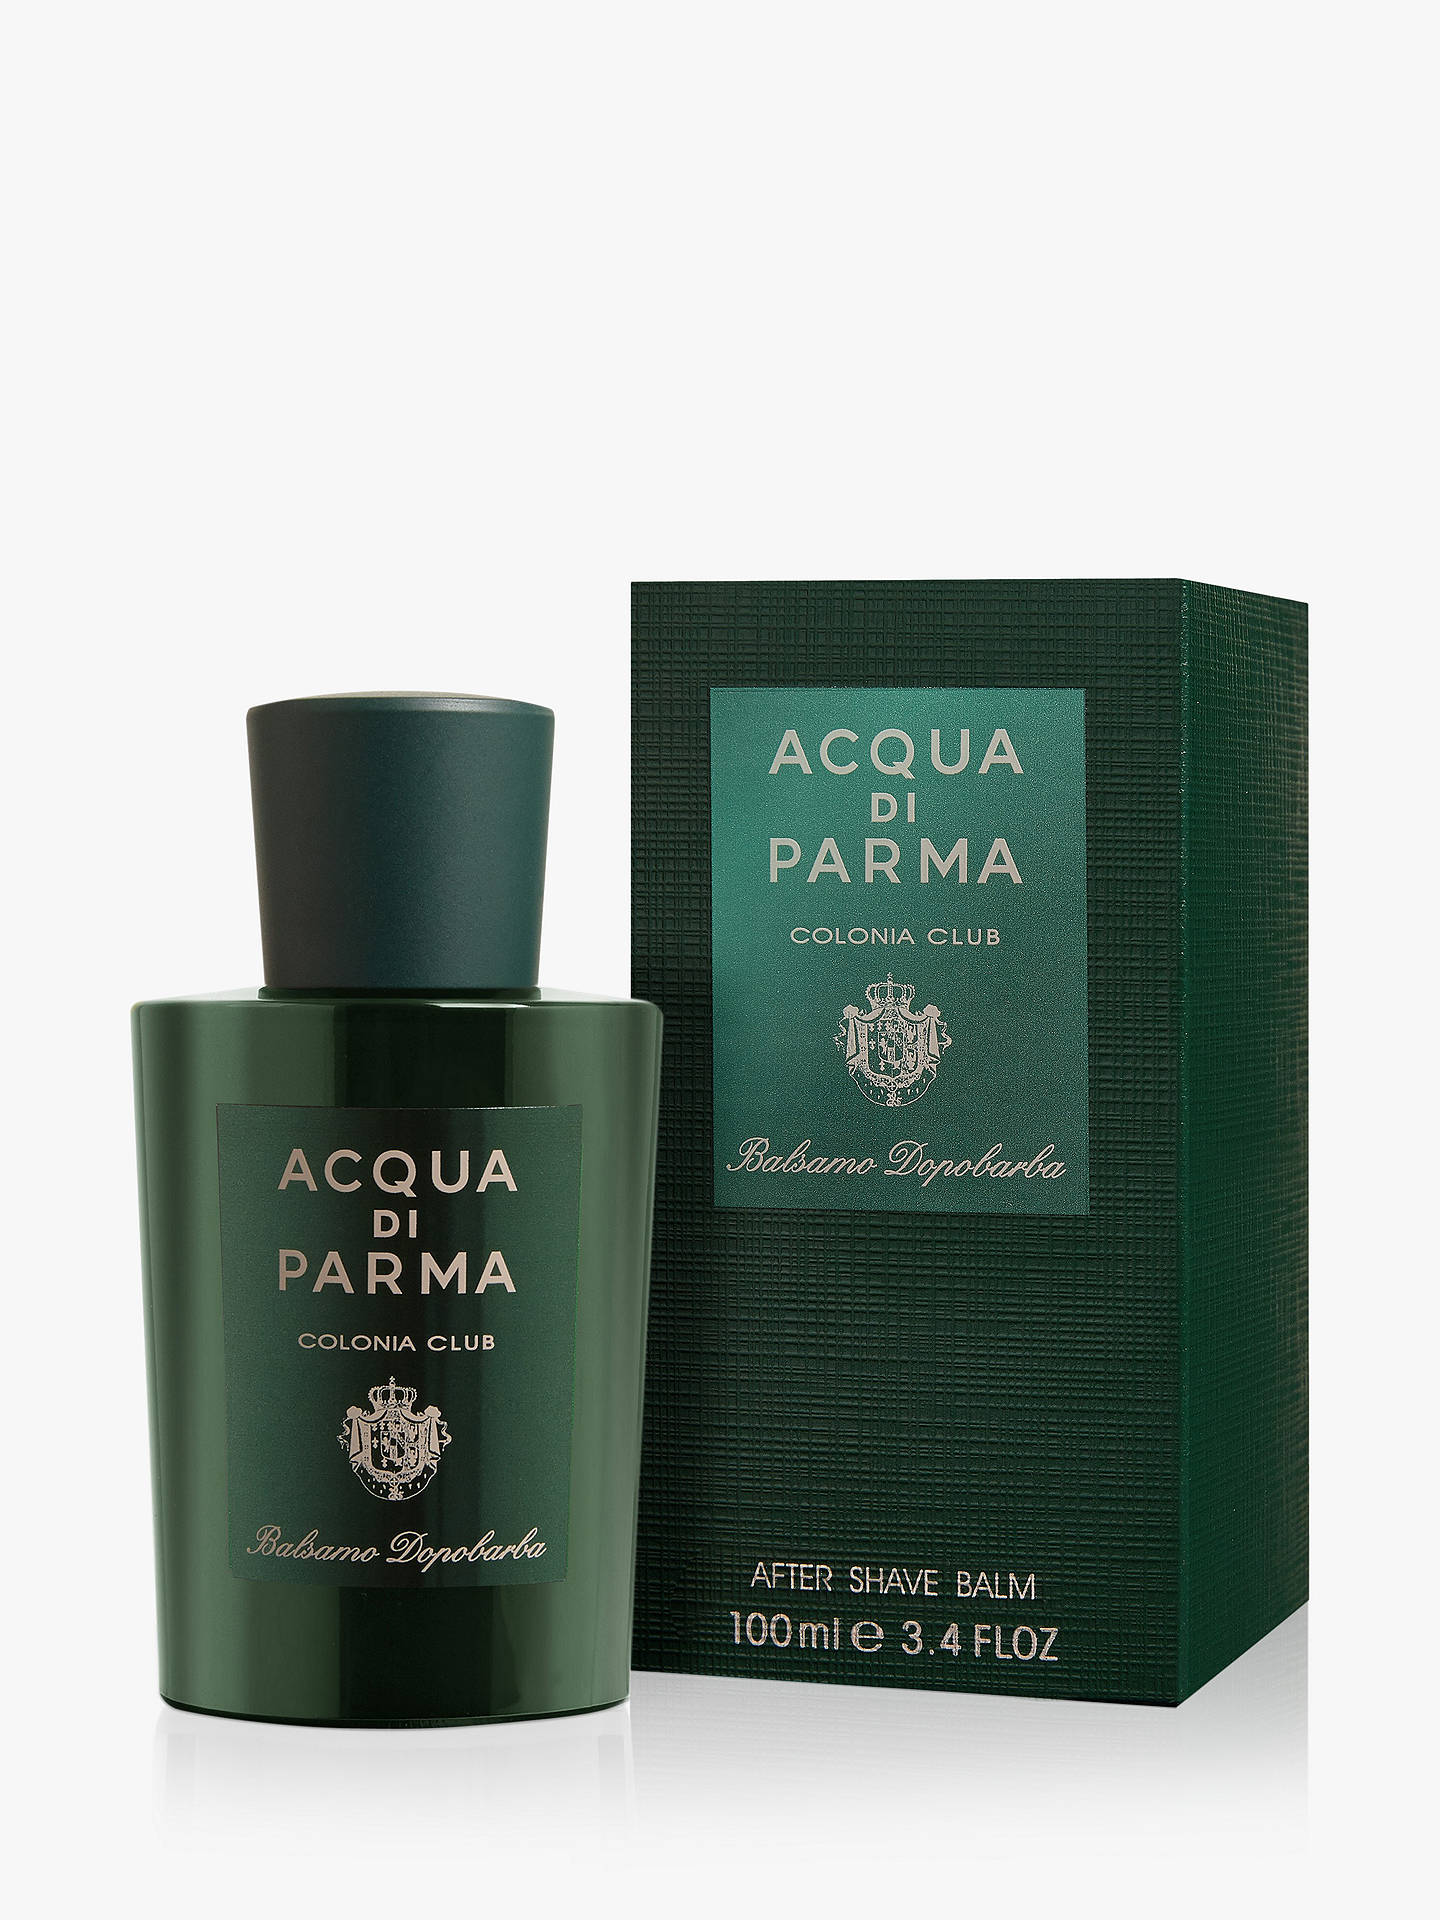 Buy Acqua di Parma Colonia Club After Shave Balm, 100ml Online at johnlewis.com